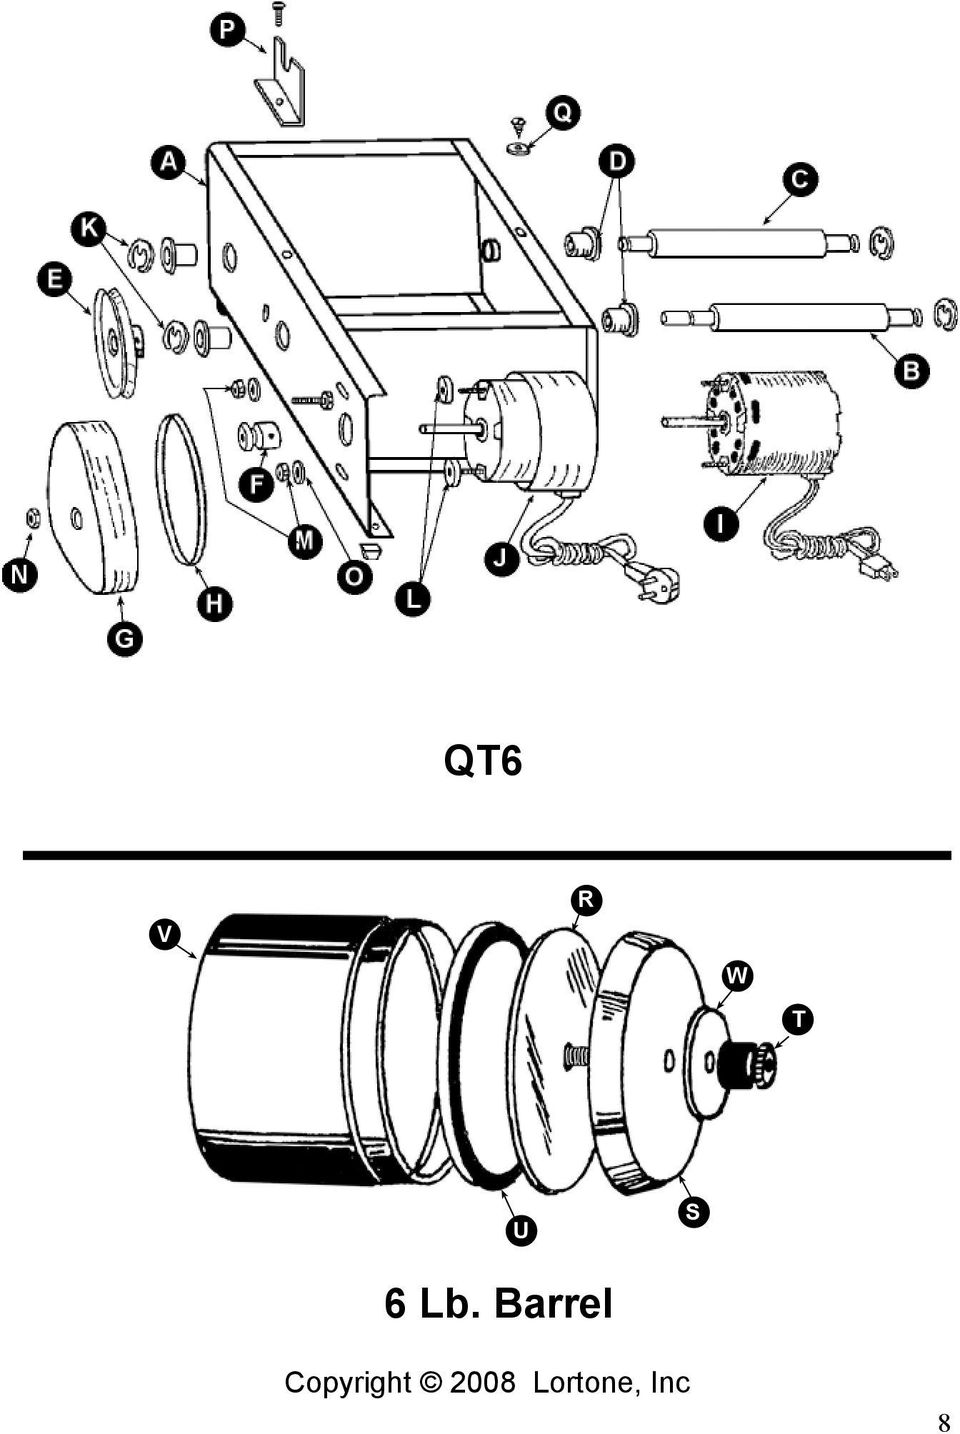 ROTARY TUMBLER INSTRUCTIONS AND PARTS LIST - PDF